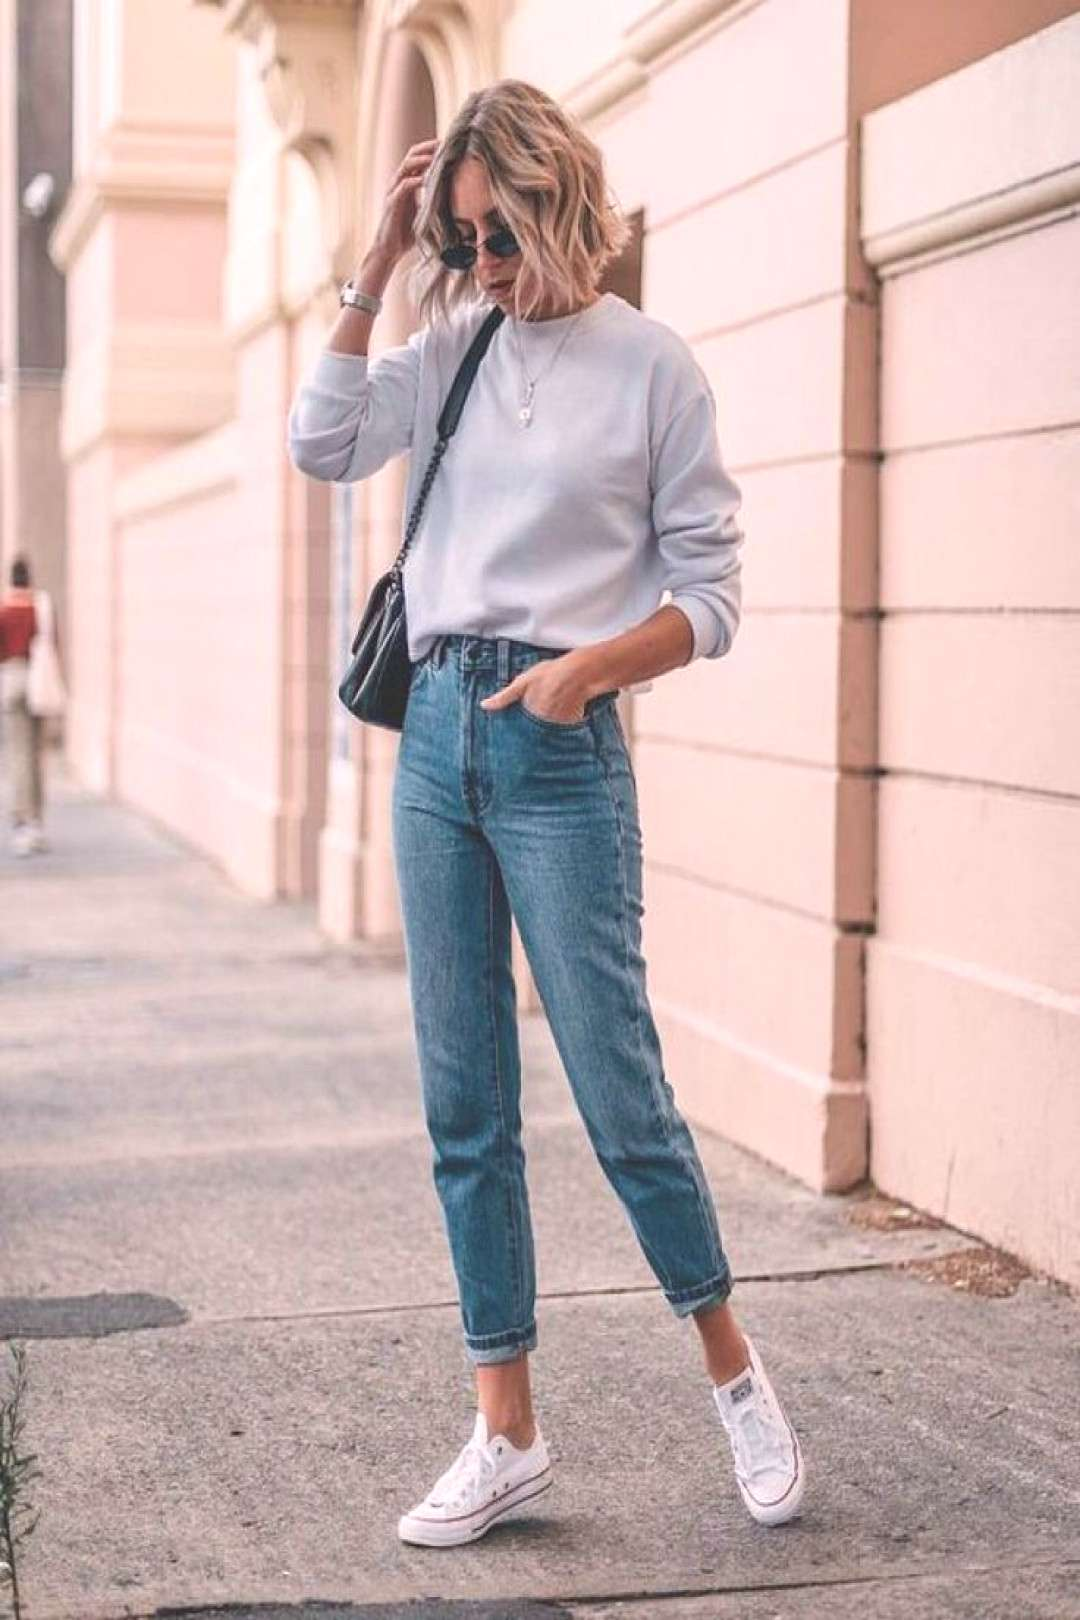 How to use colorful pieces to give a basic look